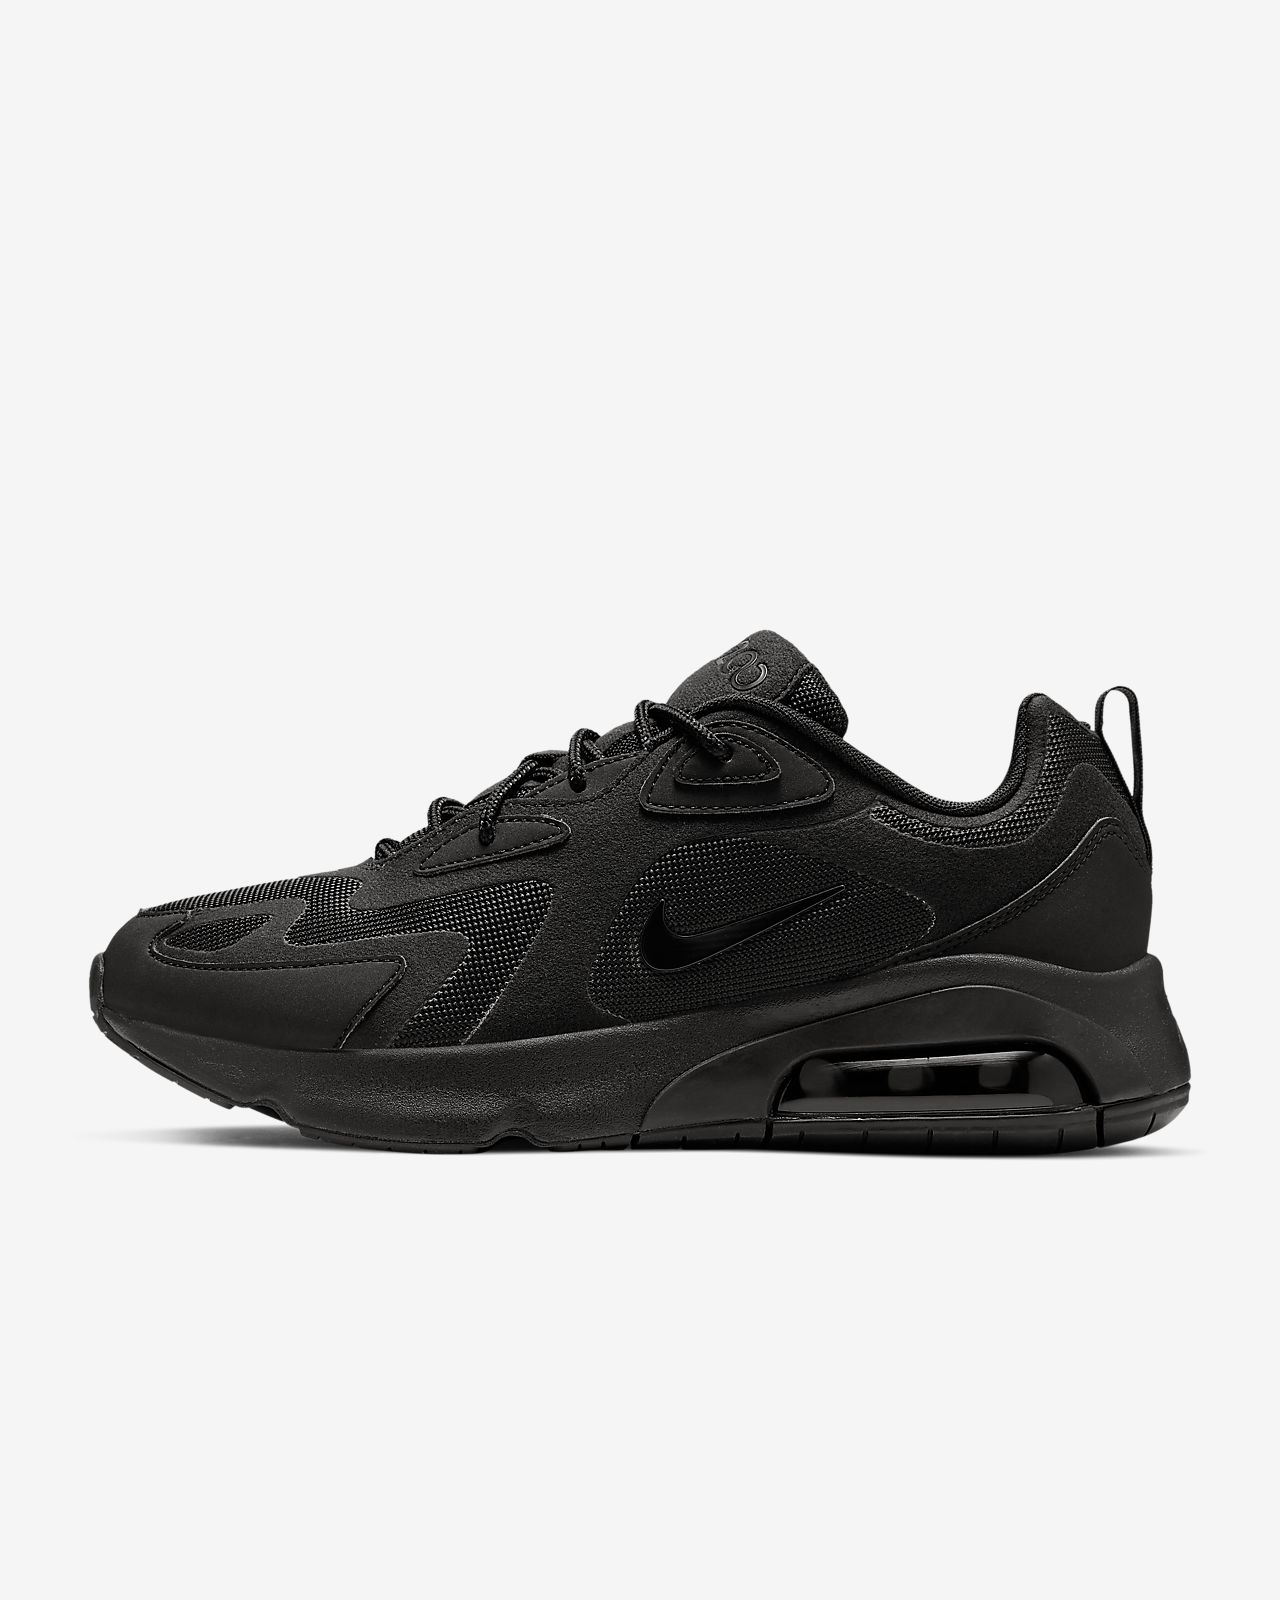 Mens Nike Air Max 720 Shoes BF 08 | Mens nike air, Nike men